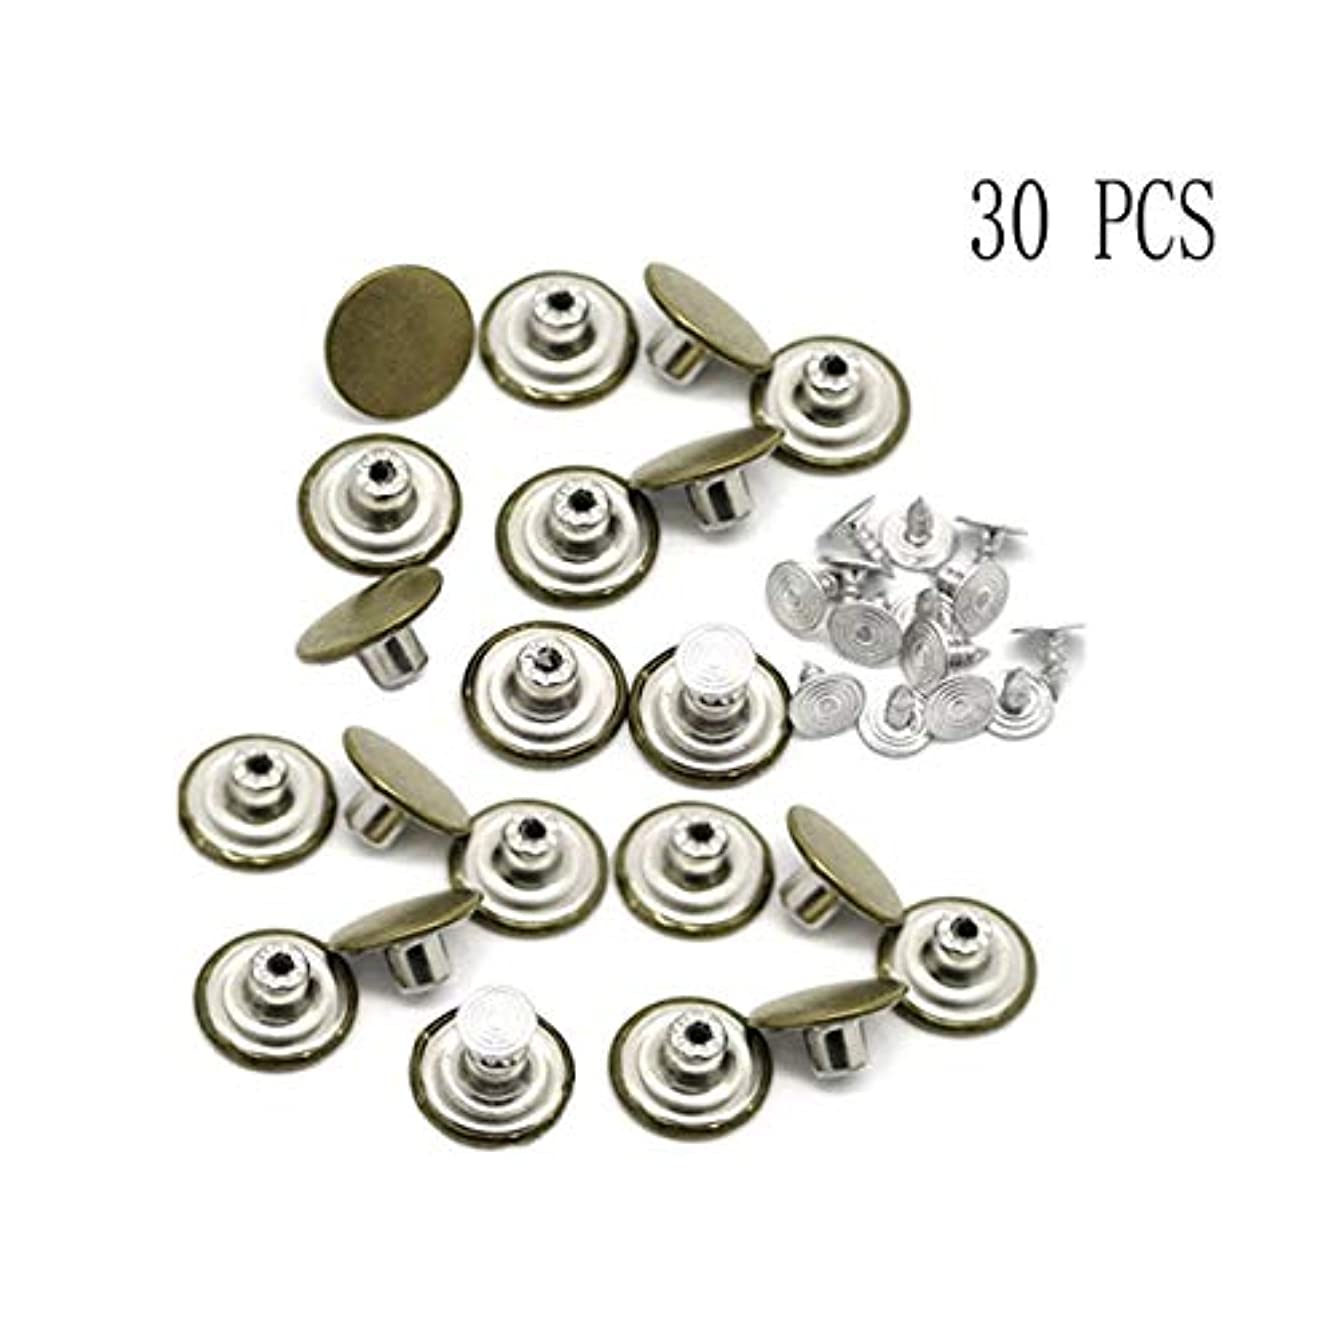 Bangbuy 20mm No-Sew Brass Jean Buttons Metal Replacement Button Kit, Set of 30